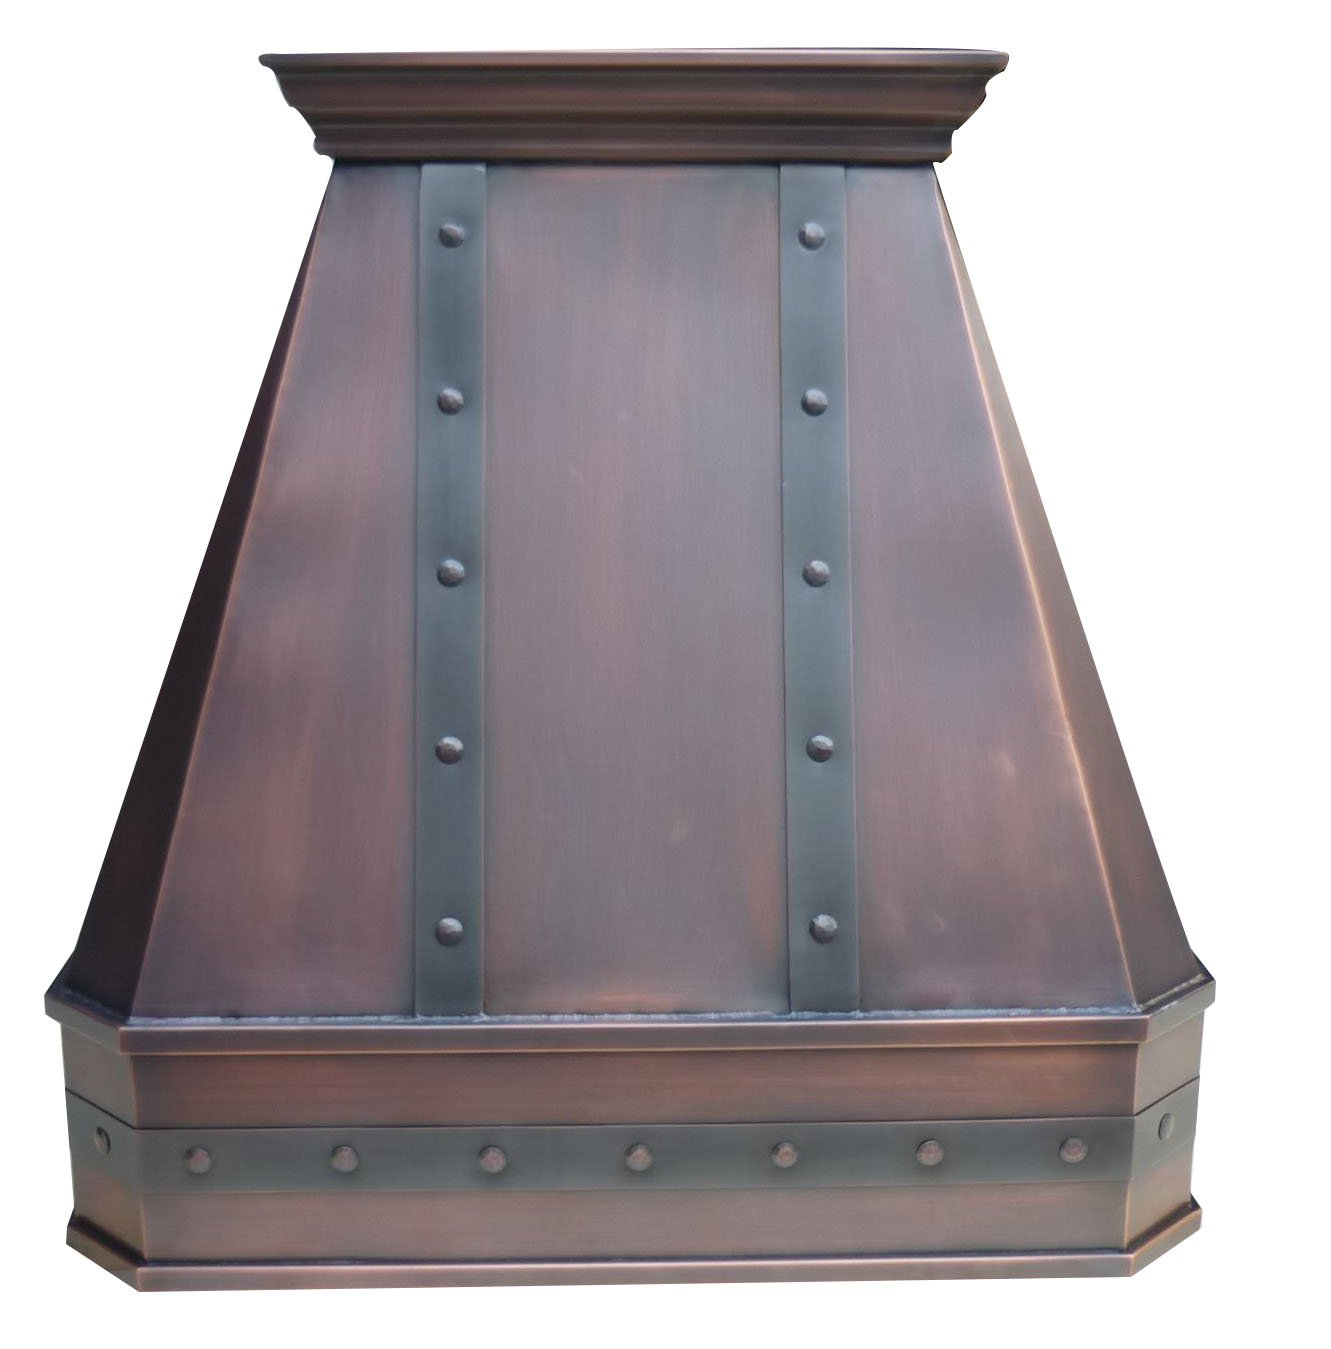 Smooth Copper Vent Hood, includes Professional Liner, Internal Motor and Lighting, Sepcial Trim Design make it easy to install, Antique Copper Finish Suite to Most American Kitchens W36 x H30inch